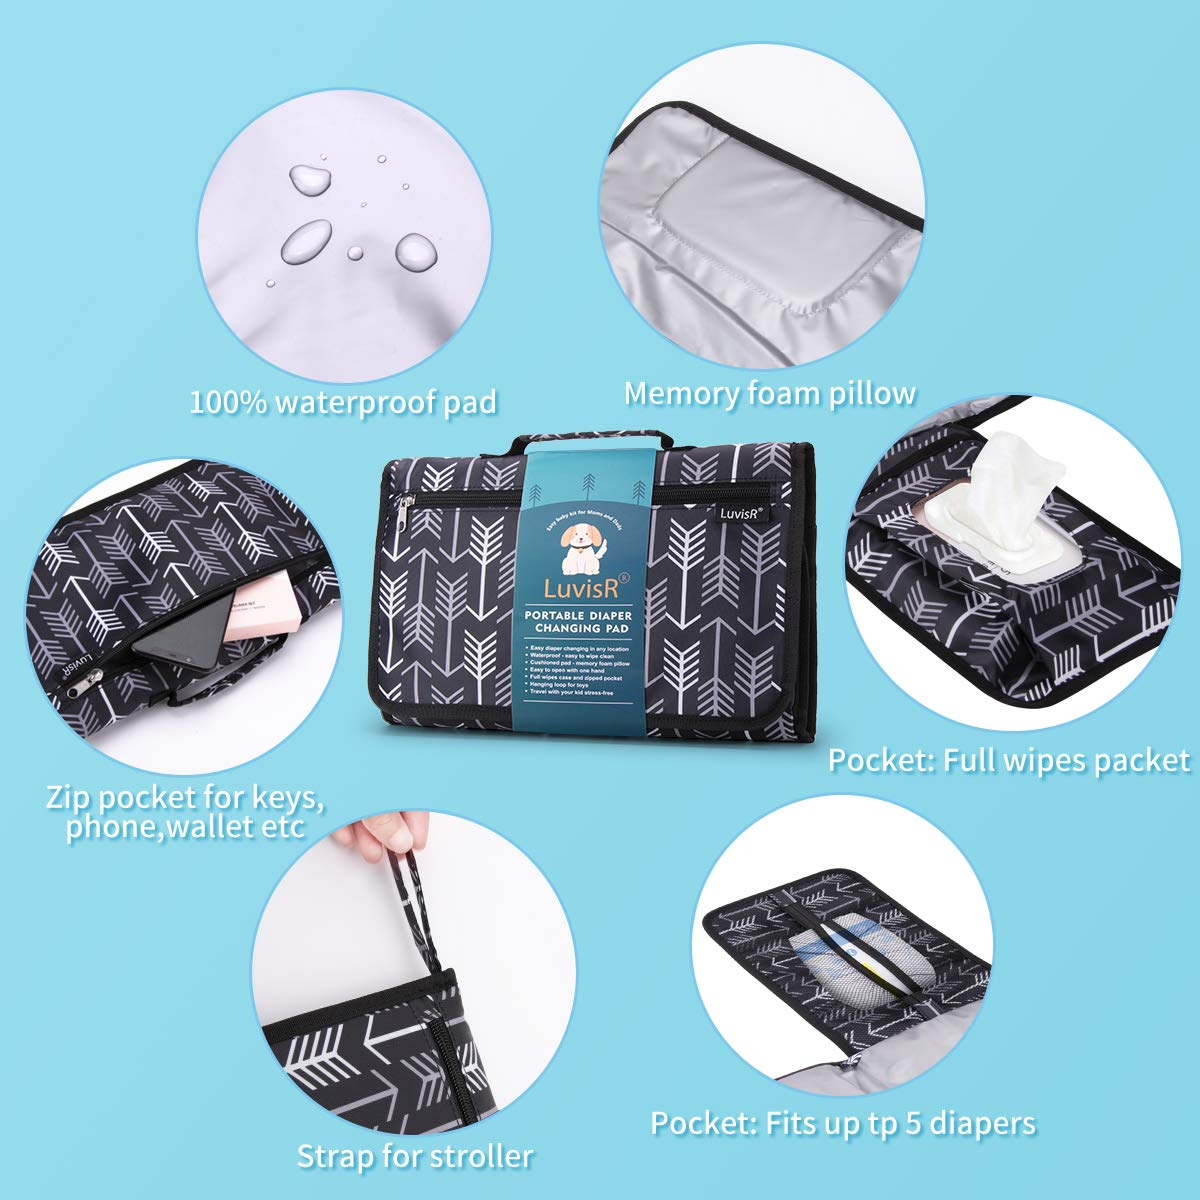 Portable Diaper Changing Pad for Baby, Waterproof Detachable Travel Changing Pad with Baby Wipes Pocket - Gifts for Baby Shower, Newborn Girls and Boys